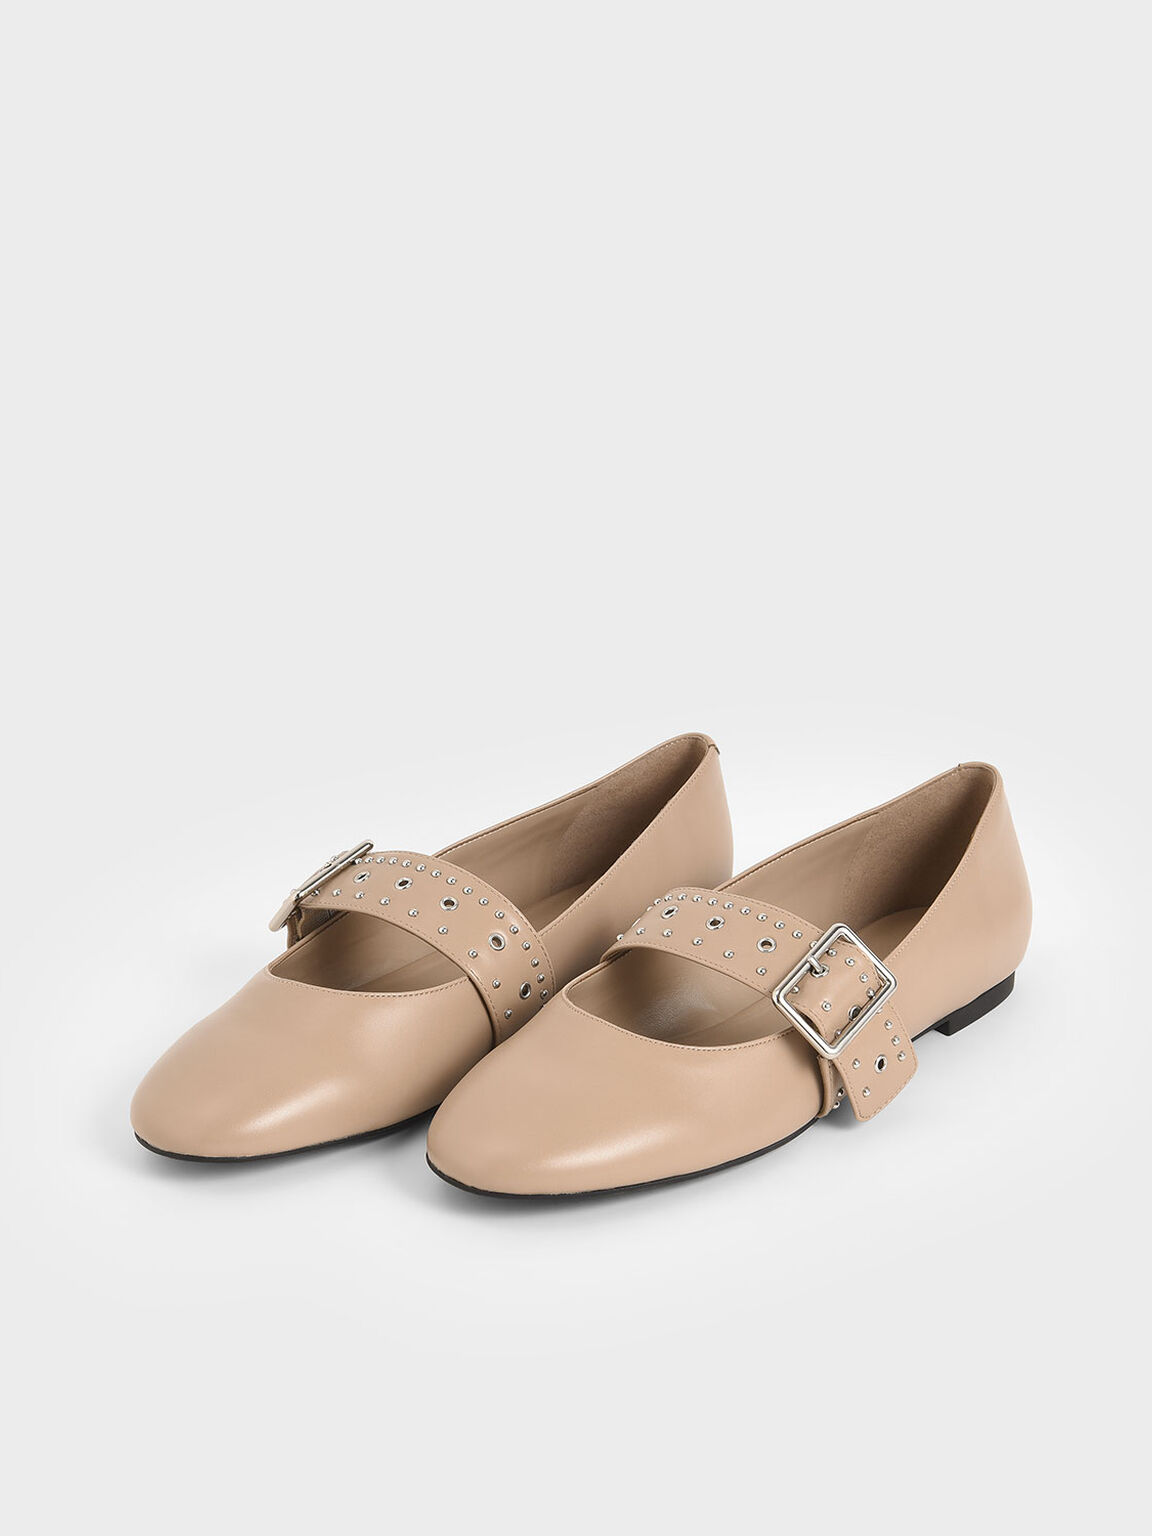 Studded Mary Jane Flats, Nude, hi-res